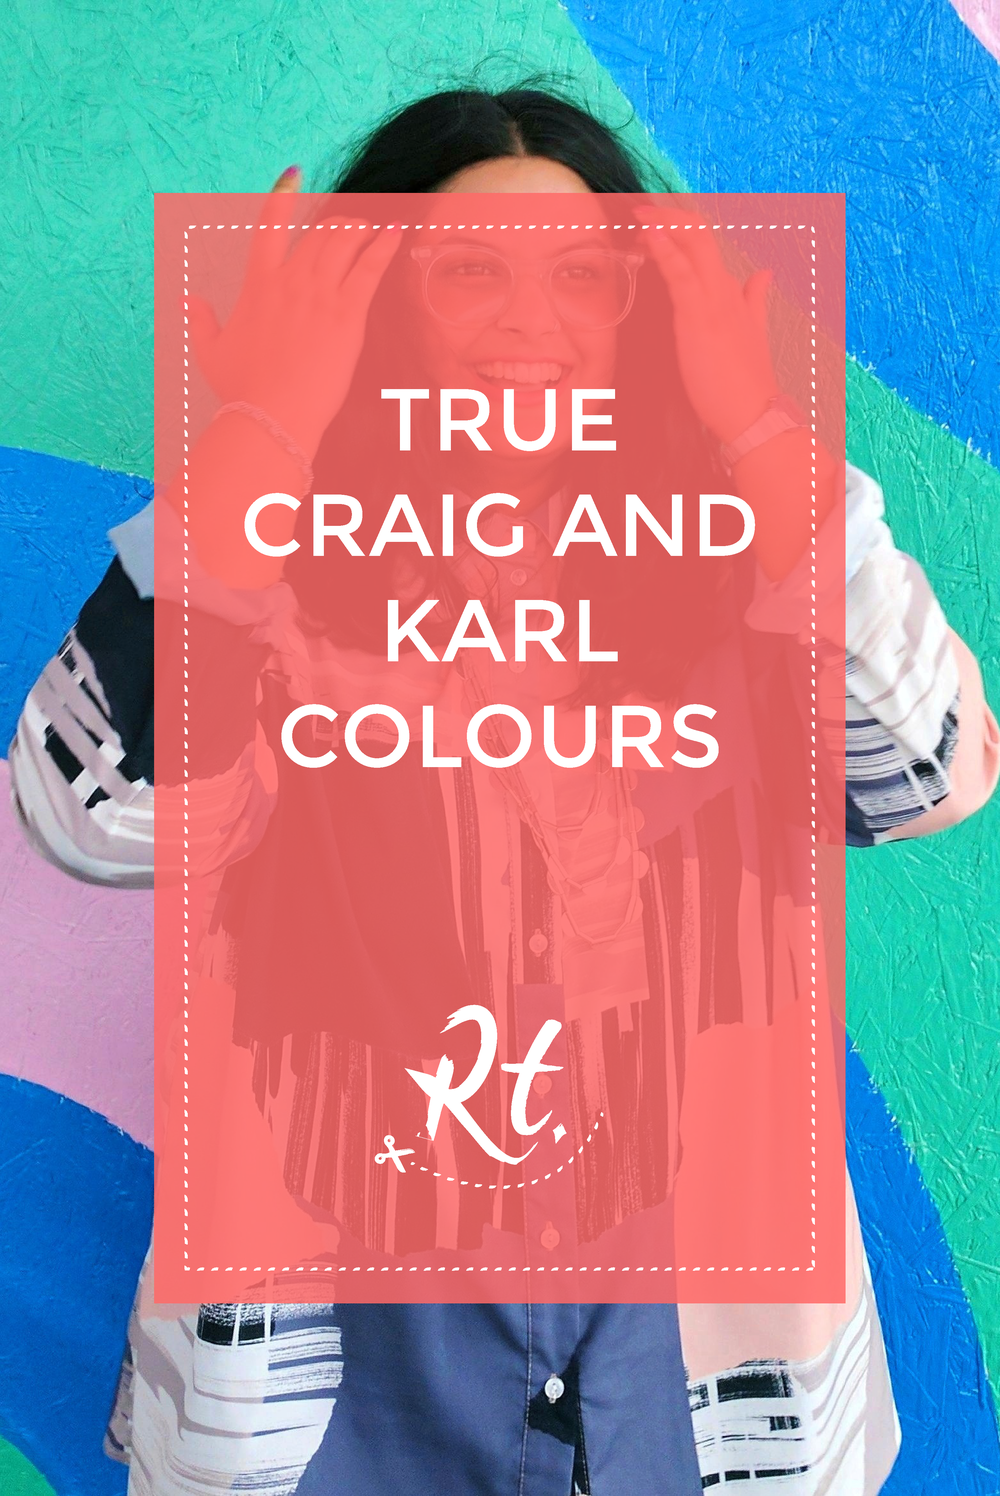 True Craig and Karl Colours by Rosh Thanki, ASOS shirt in front of Craig and Karl pattern mural at White City petrol station